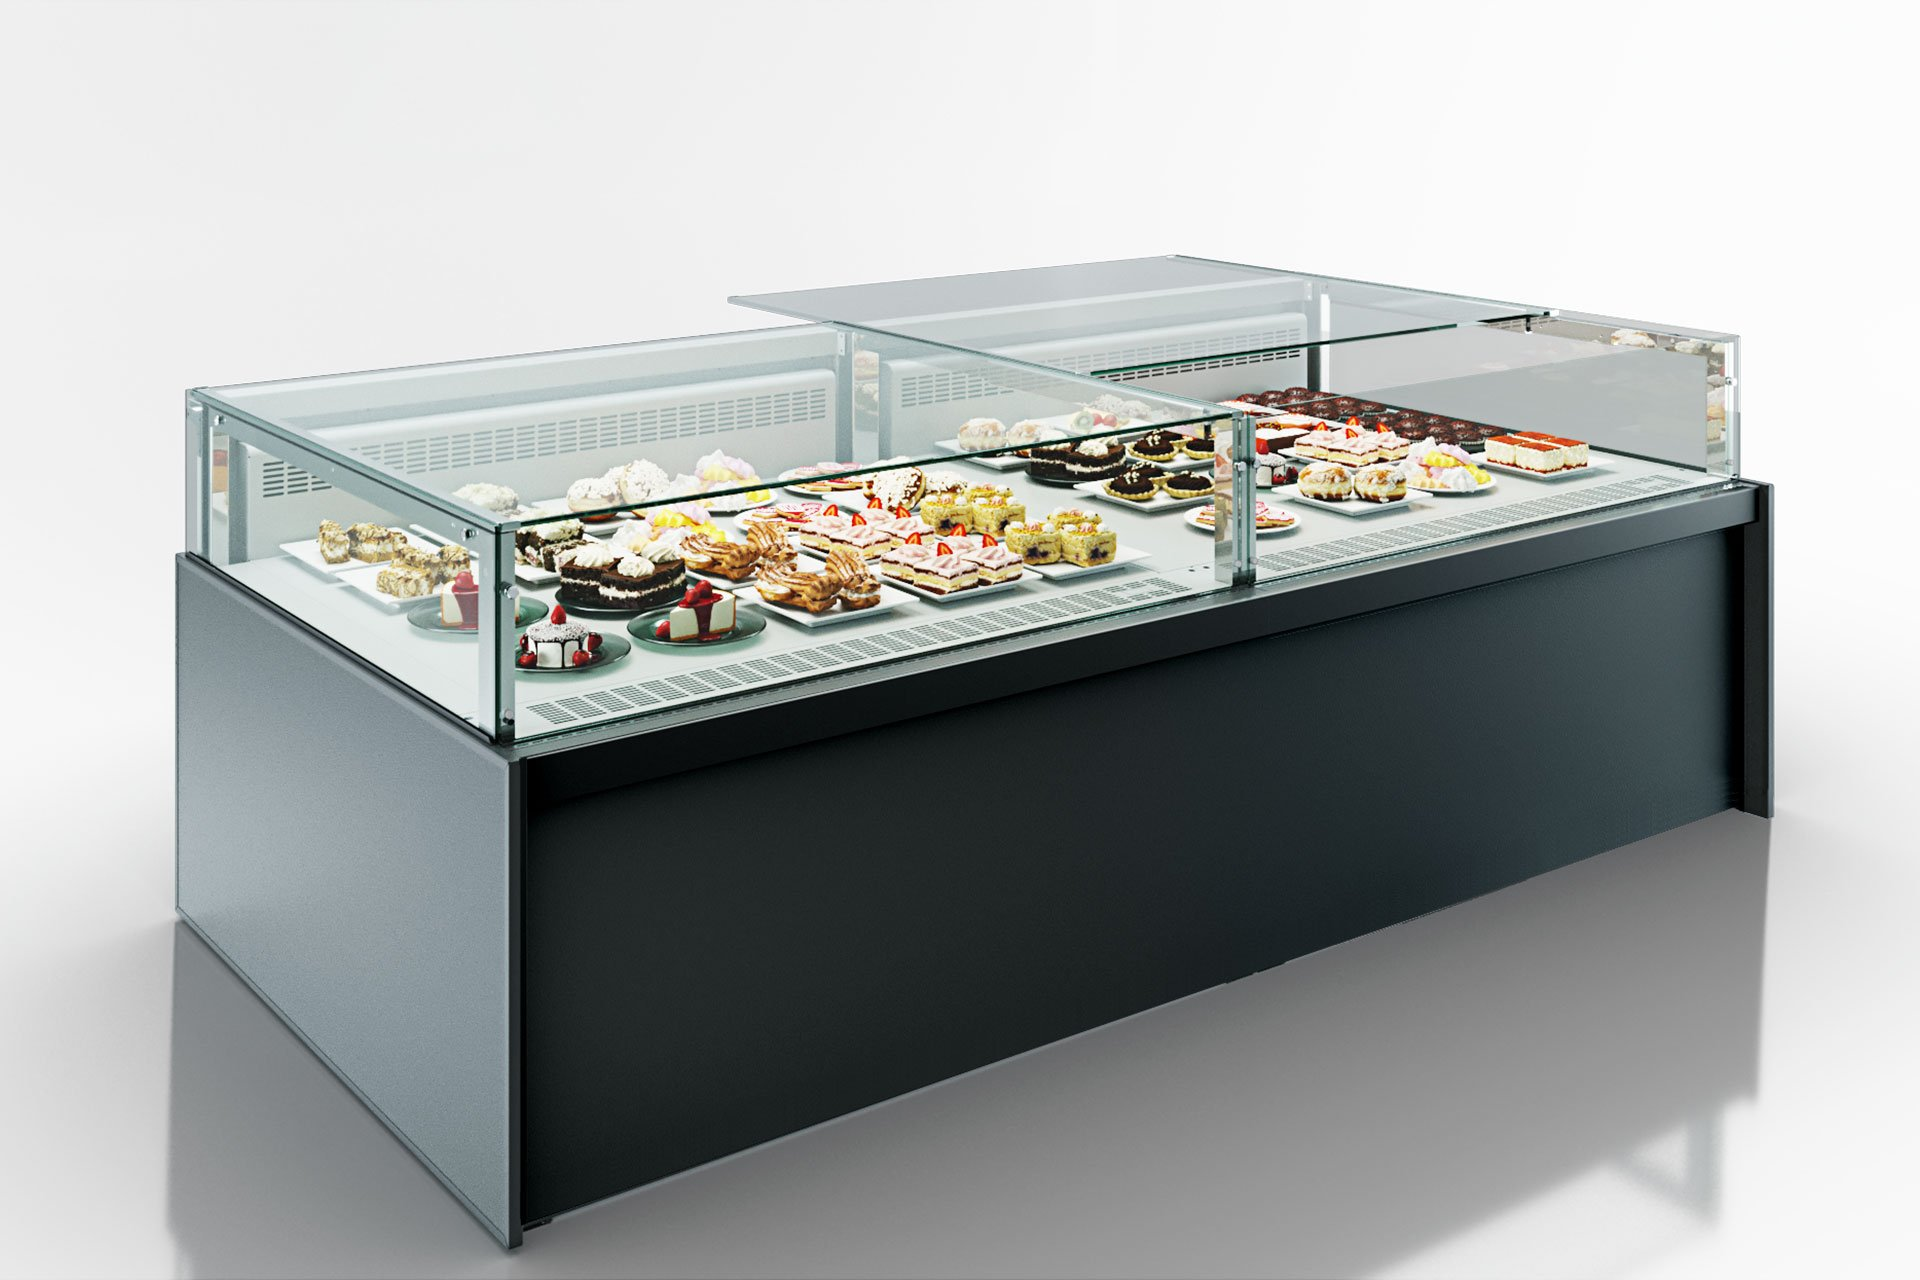 Counter Missouri MC 120 patisserie СН SP 090-DLM/DLA